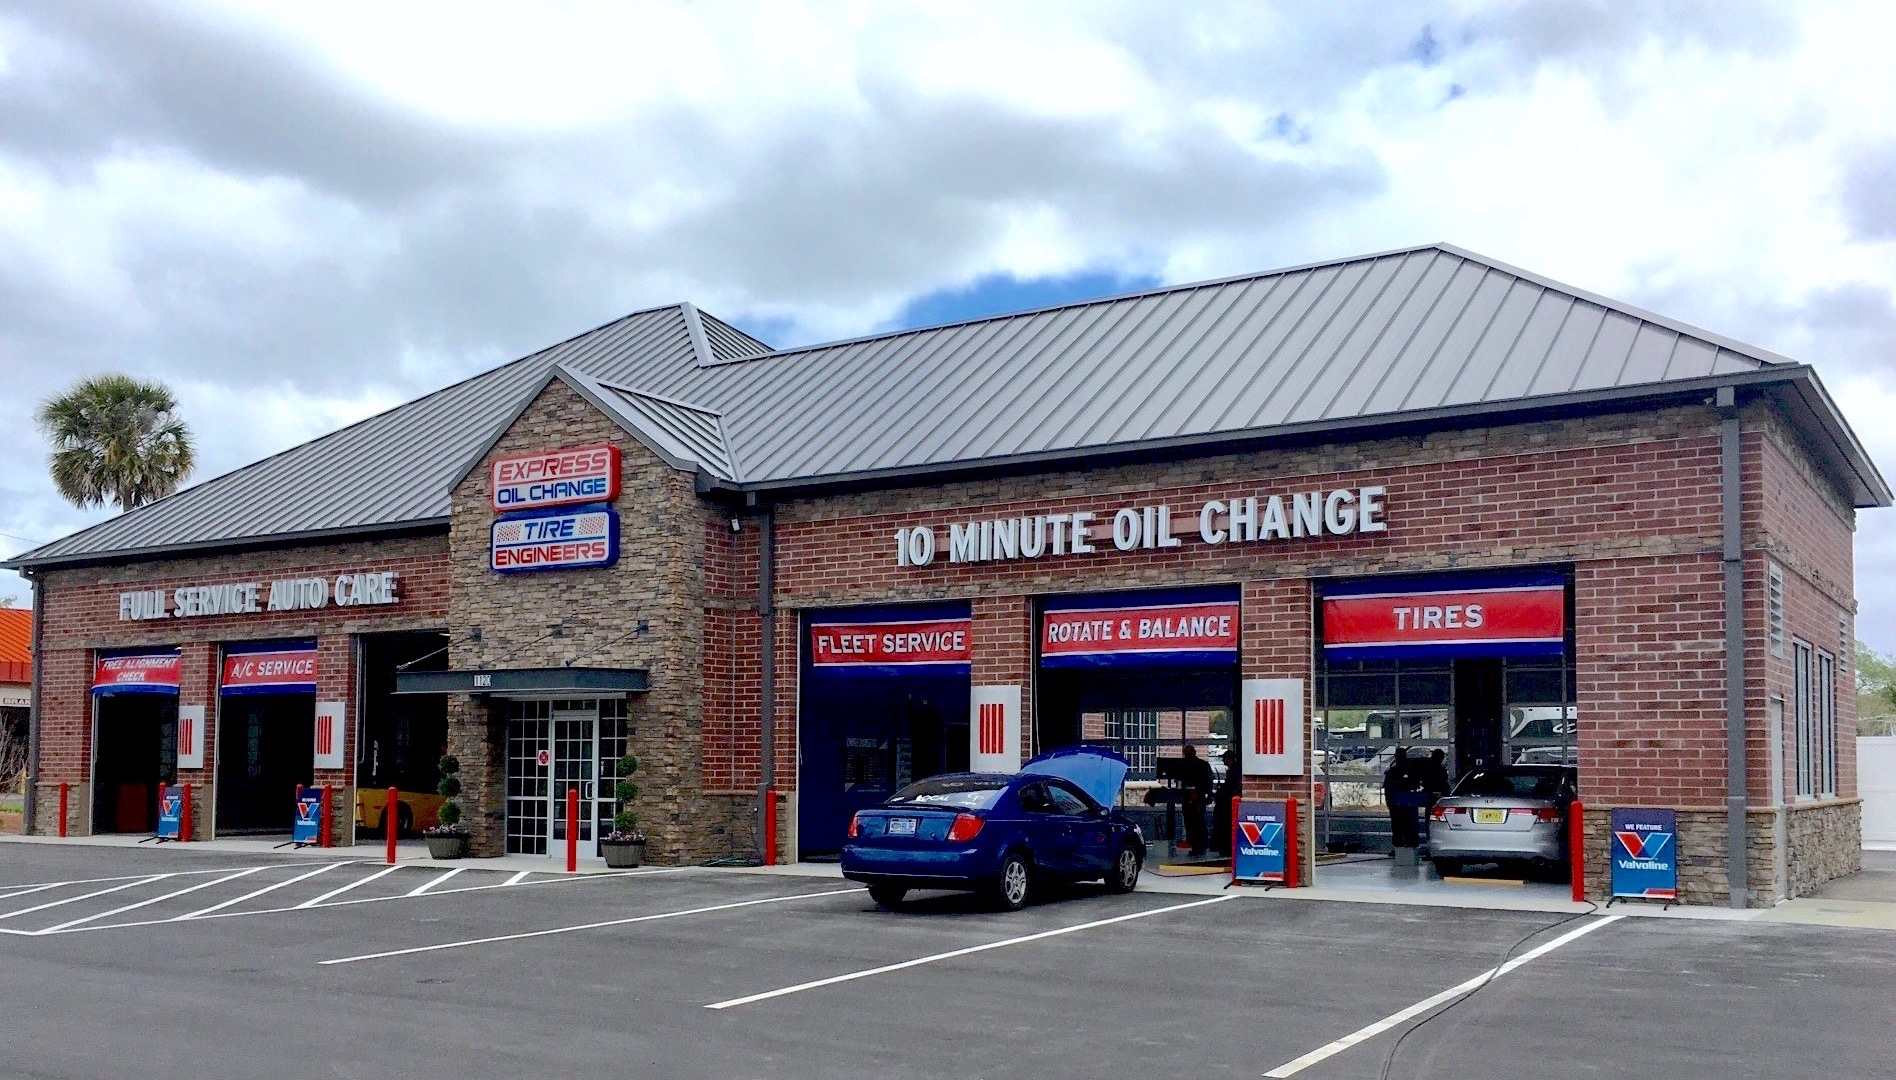 Express Oil Change & Tire Engineers at Oviedo, FL store